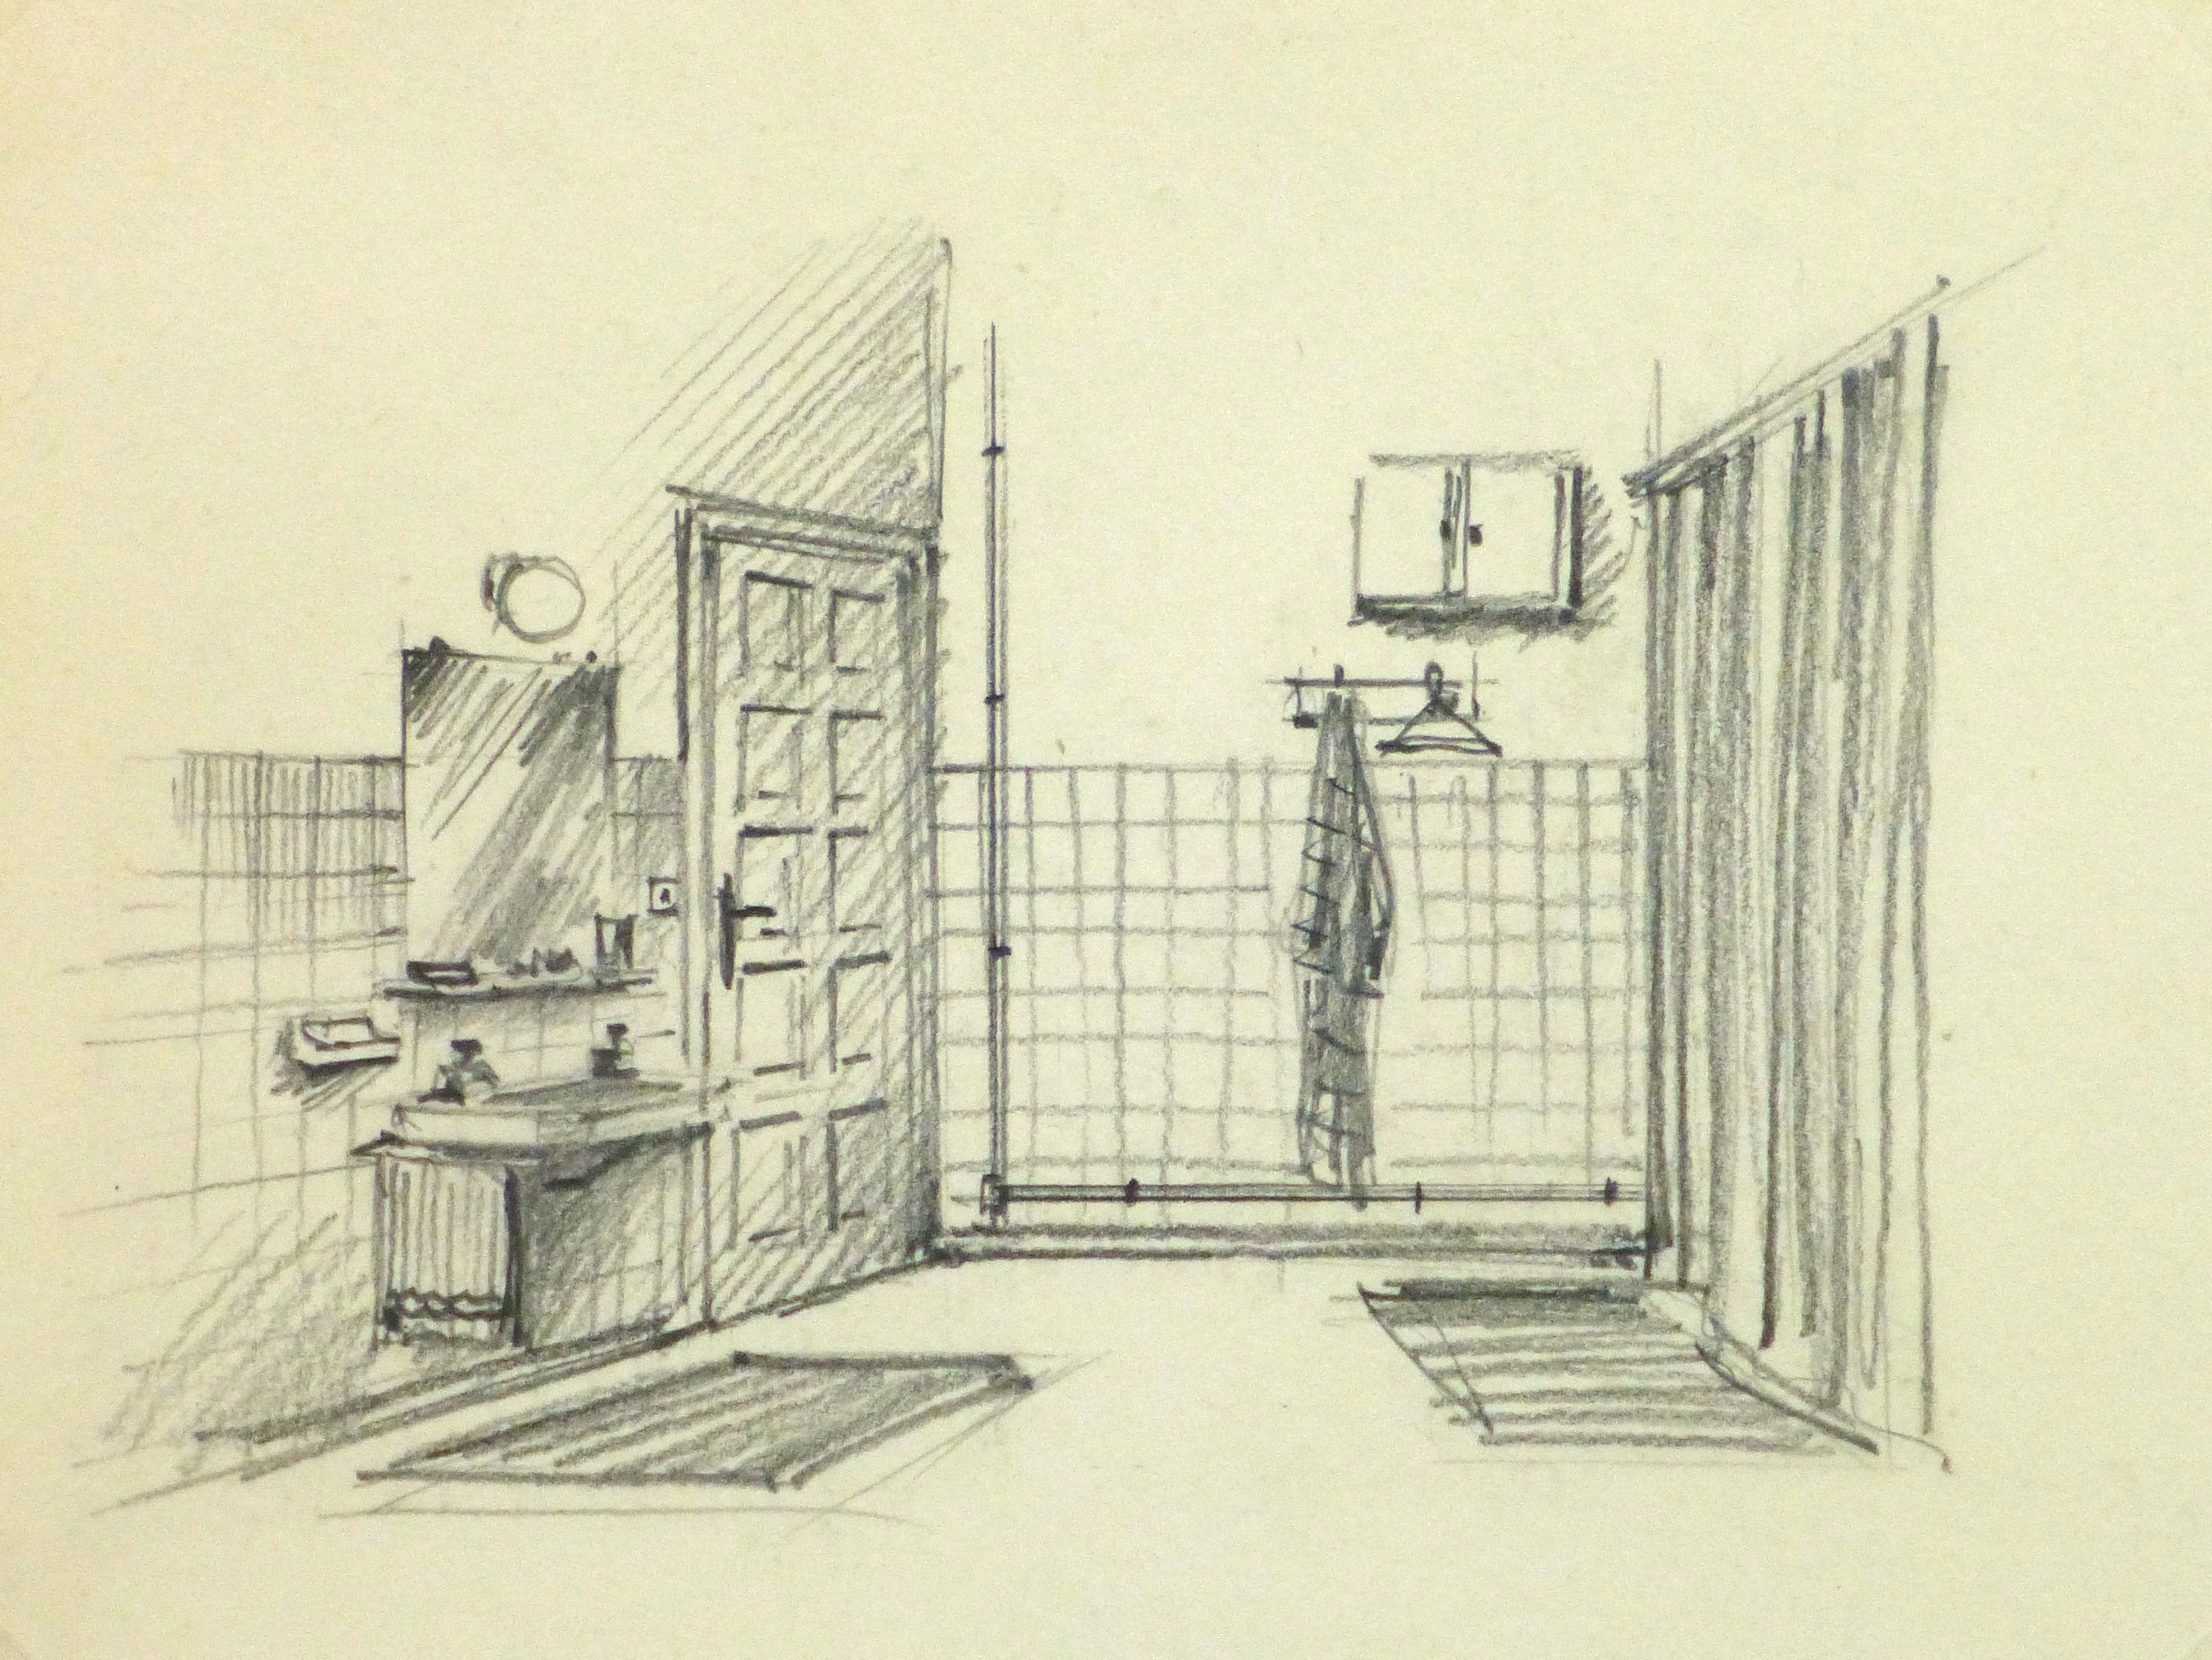 Pencil drawing bathroom interior circa 1950